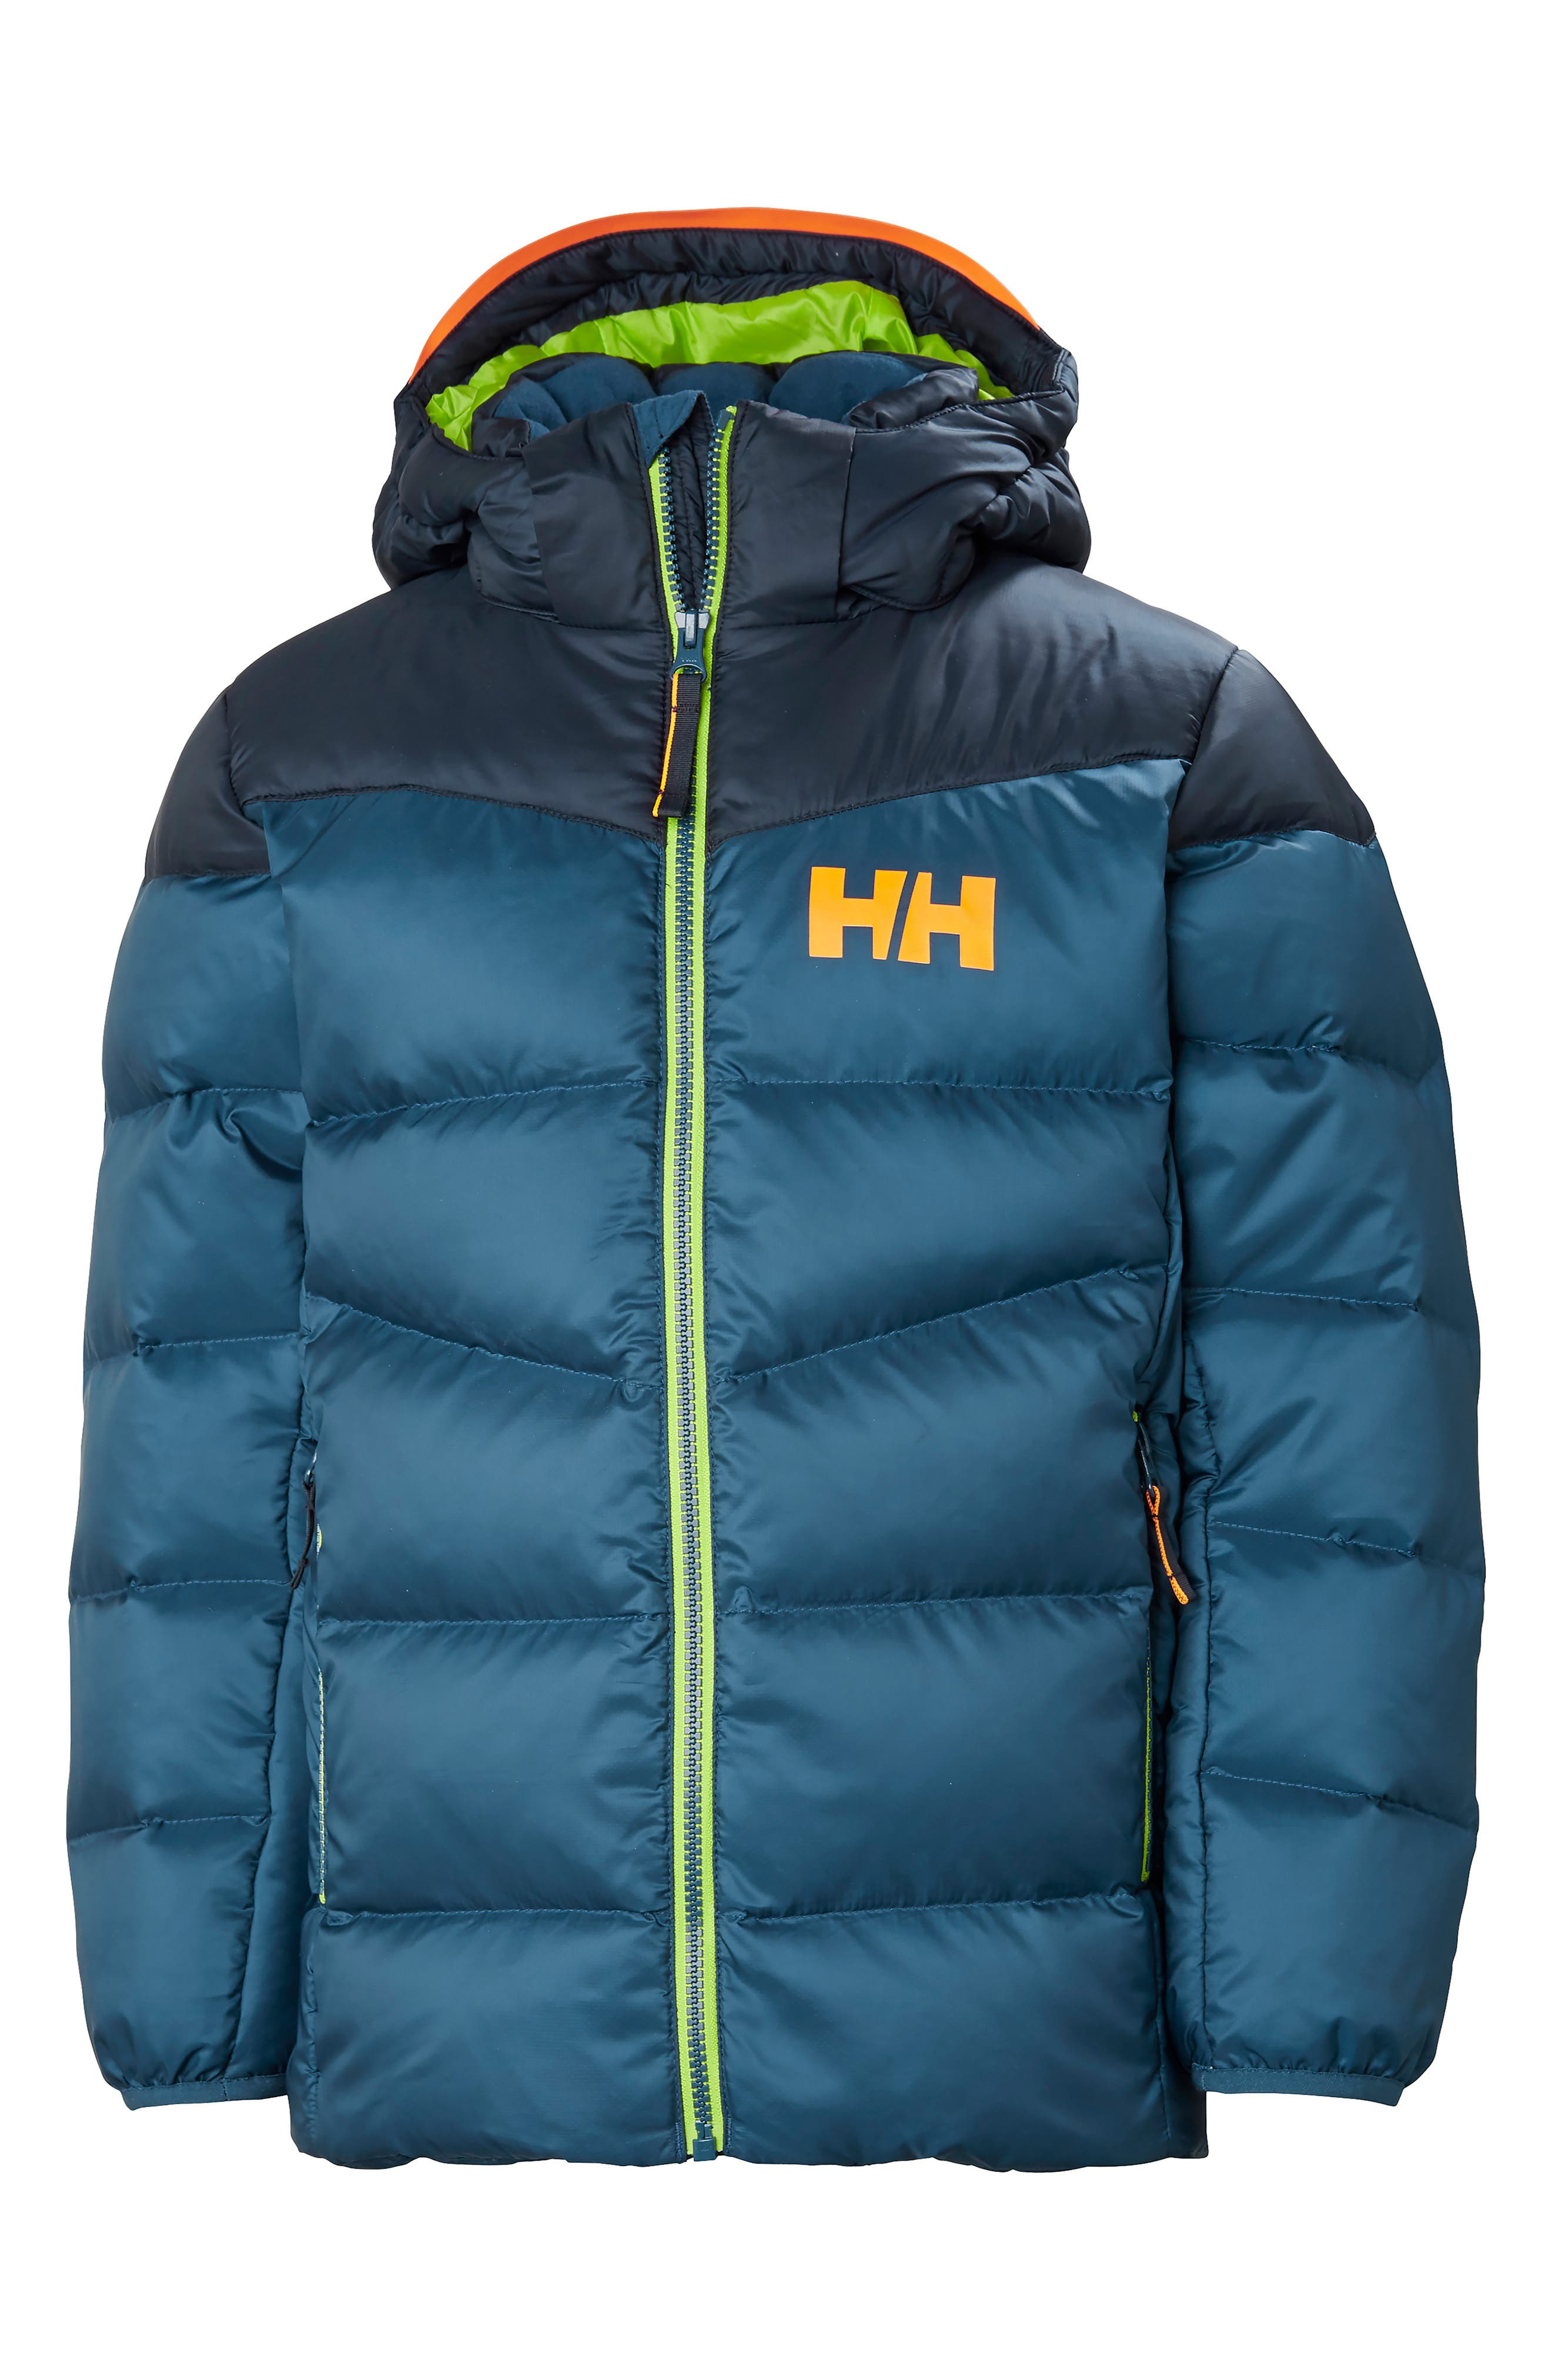 Fjord Water Resistant Puffer Jacket,                             Main thumbnail 1, color,                             DARK TEAL